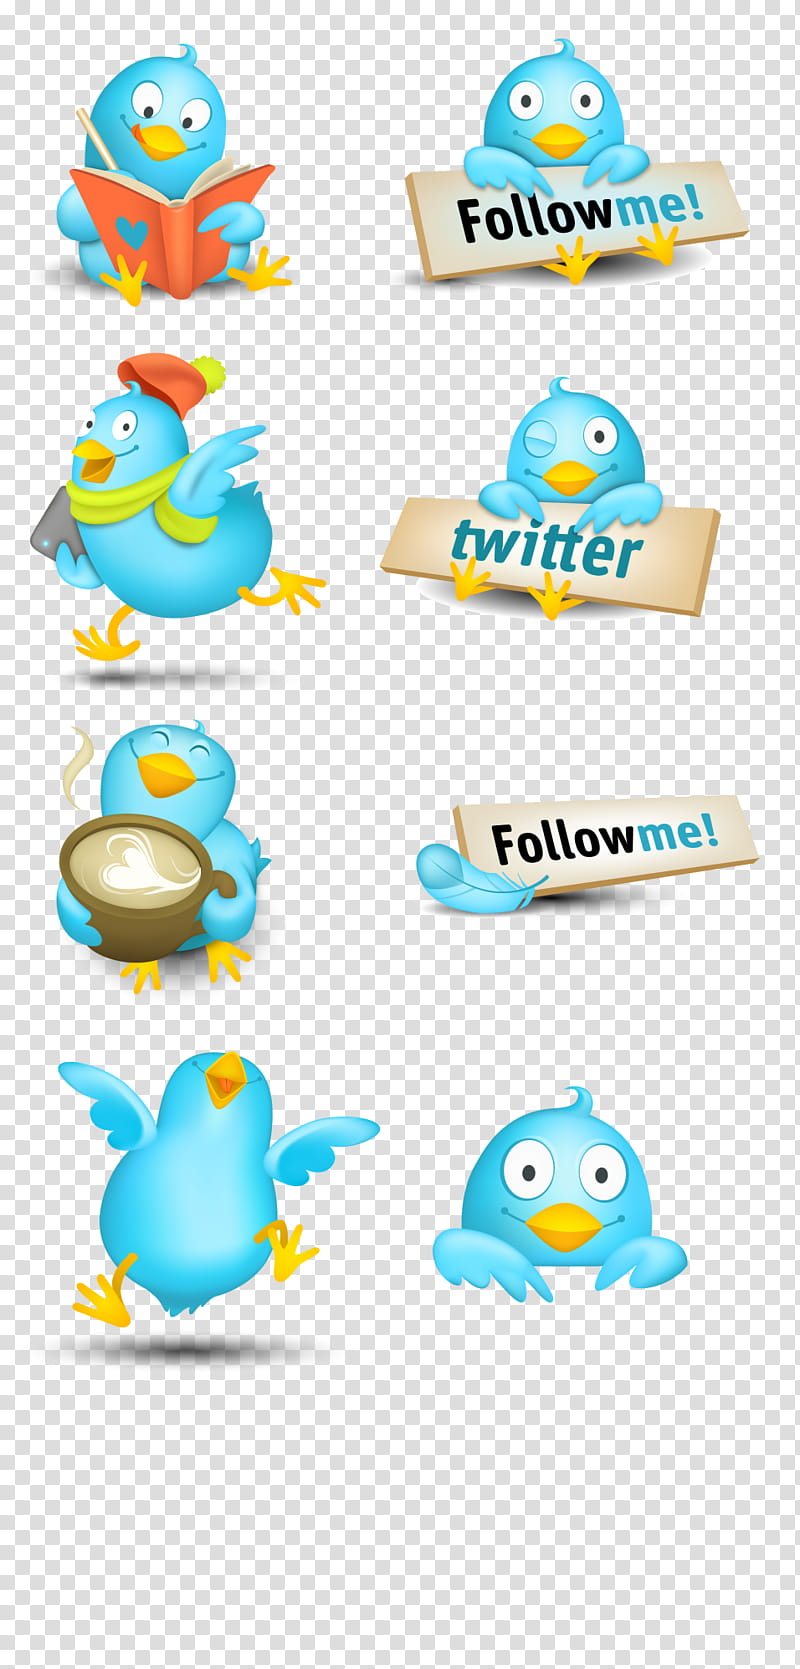 follow me on twitter clipart #3